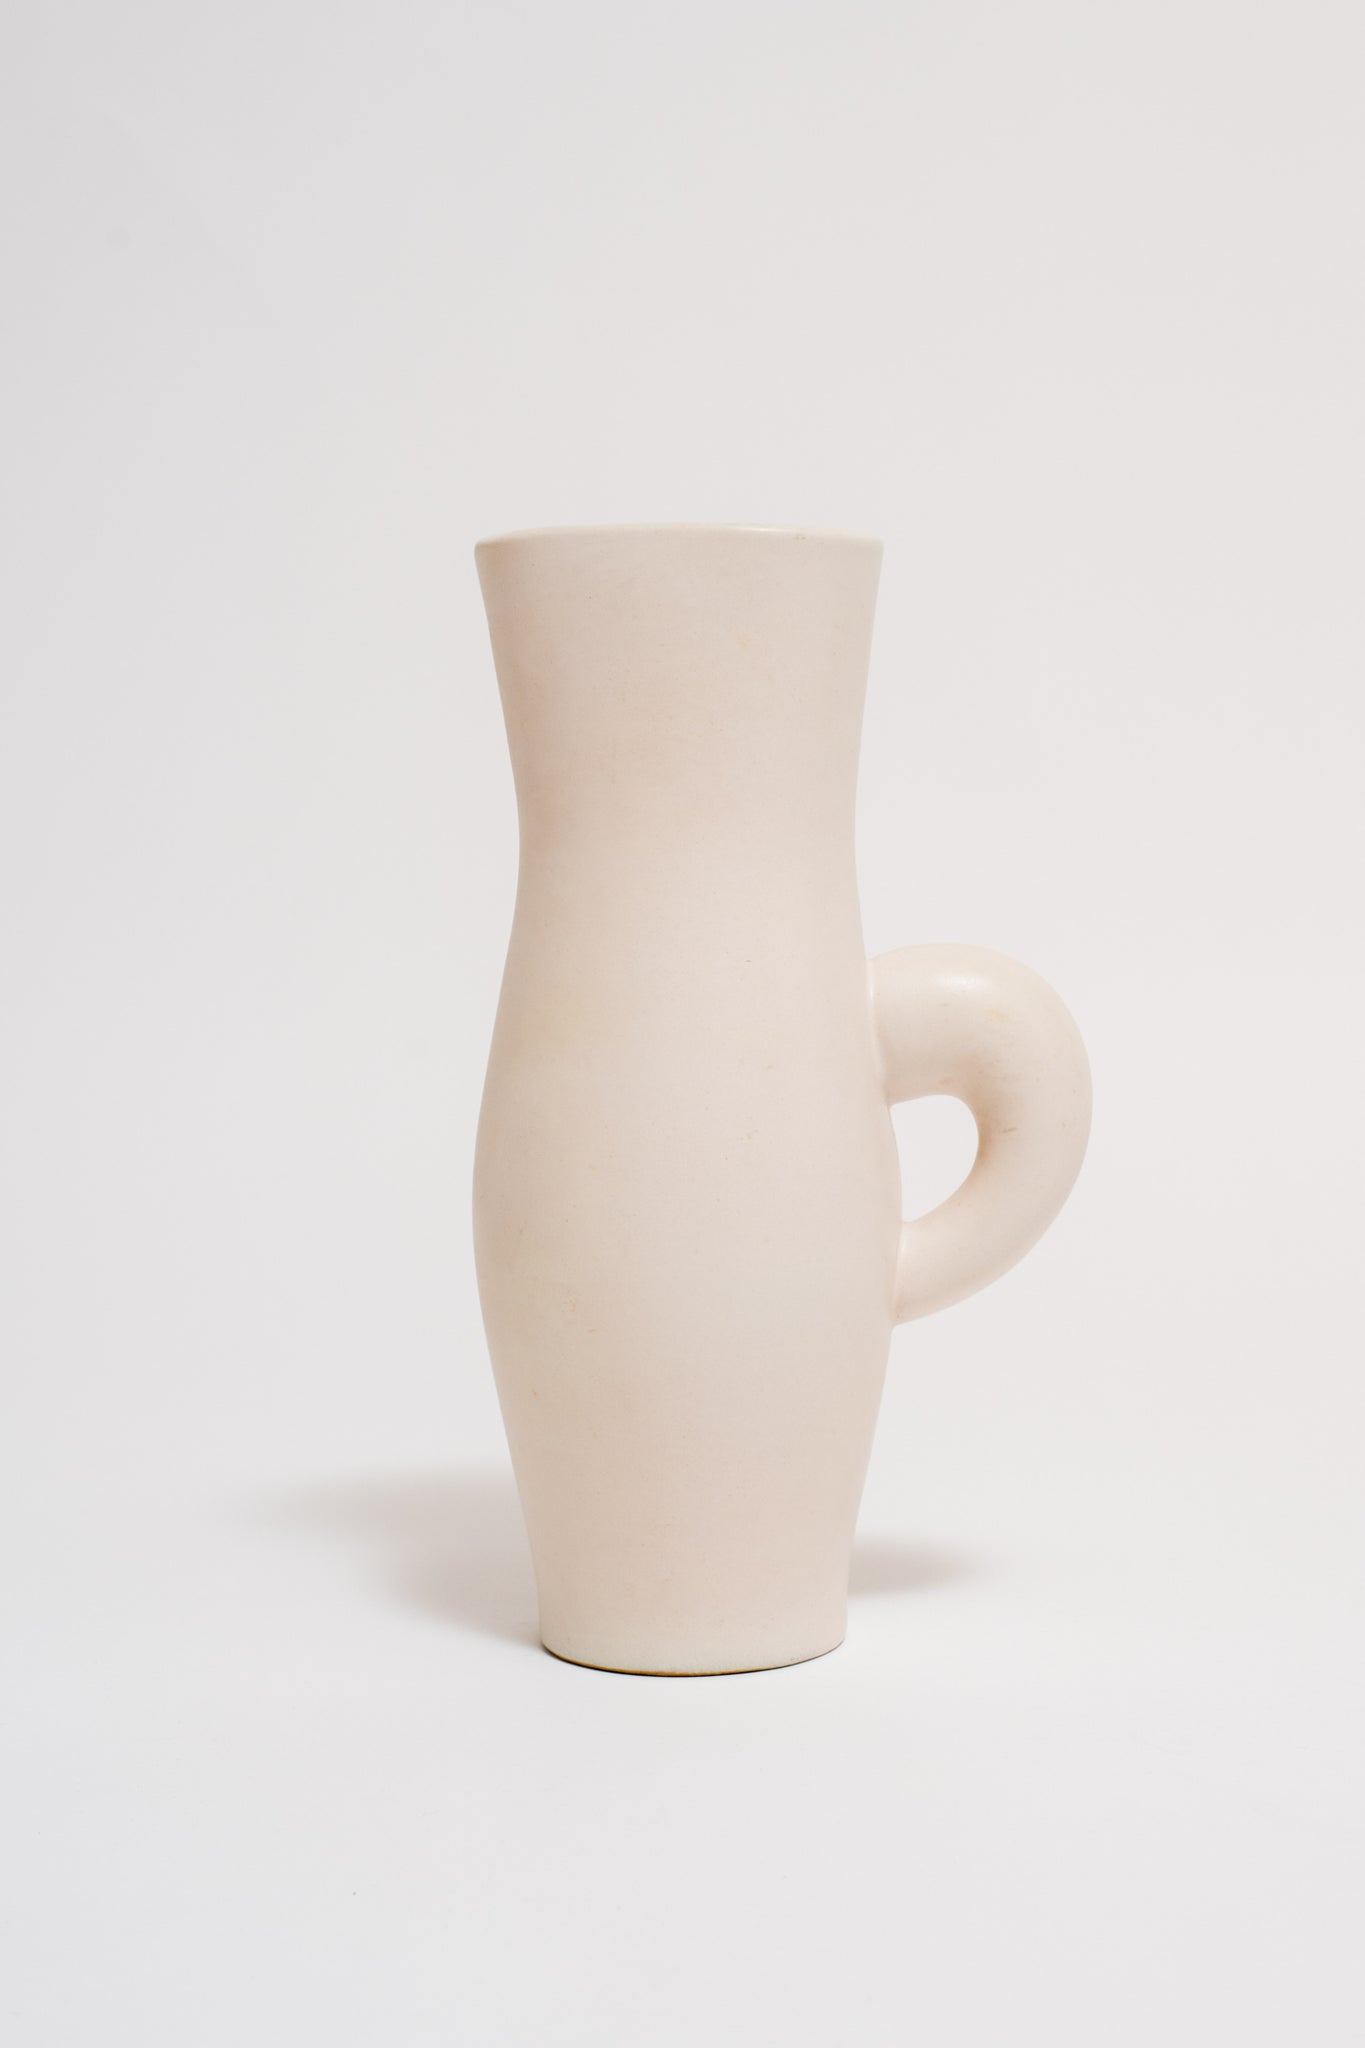 PITCHER. POL CHAMBOST, C. 1950